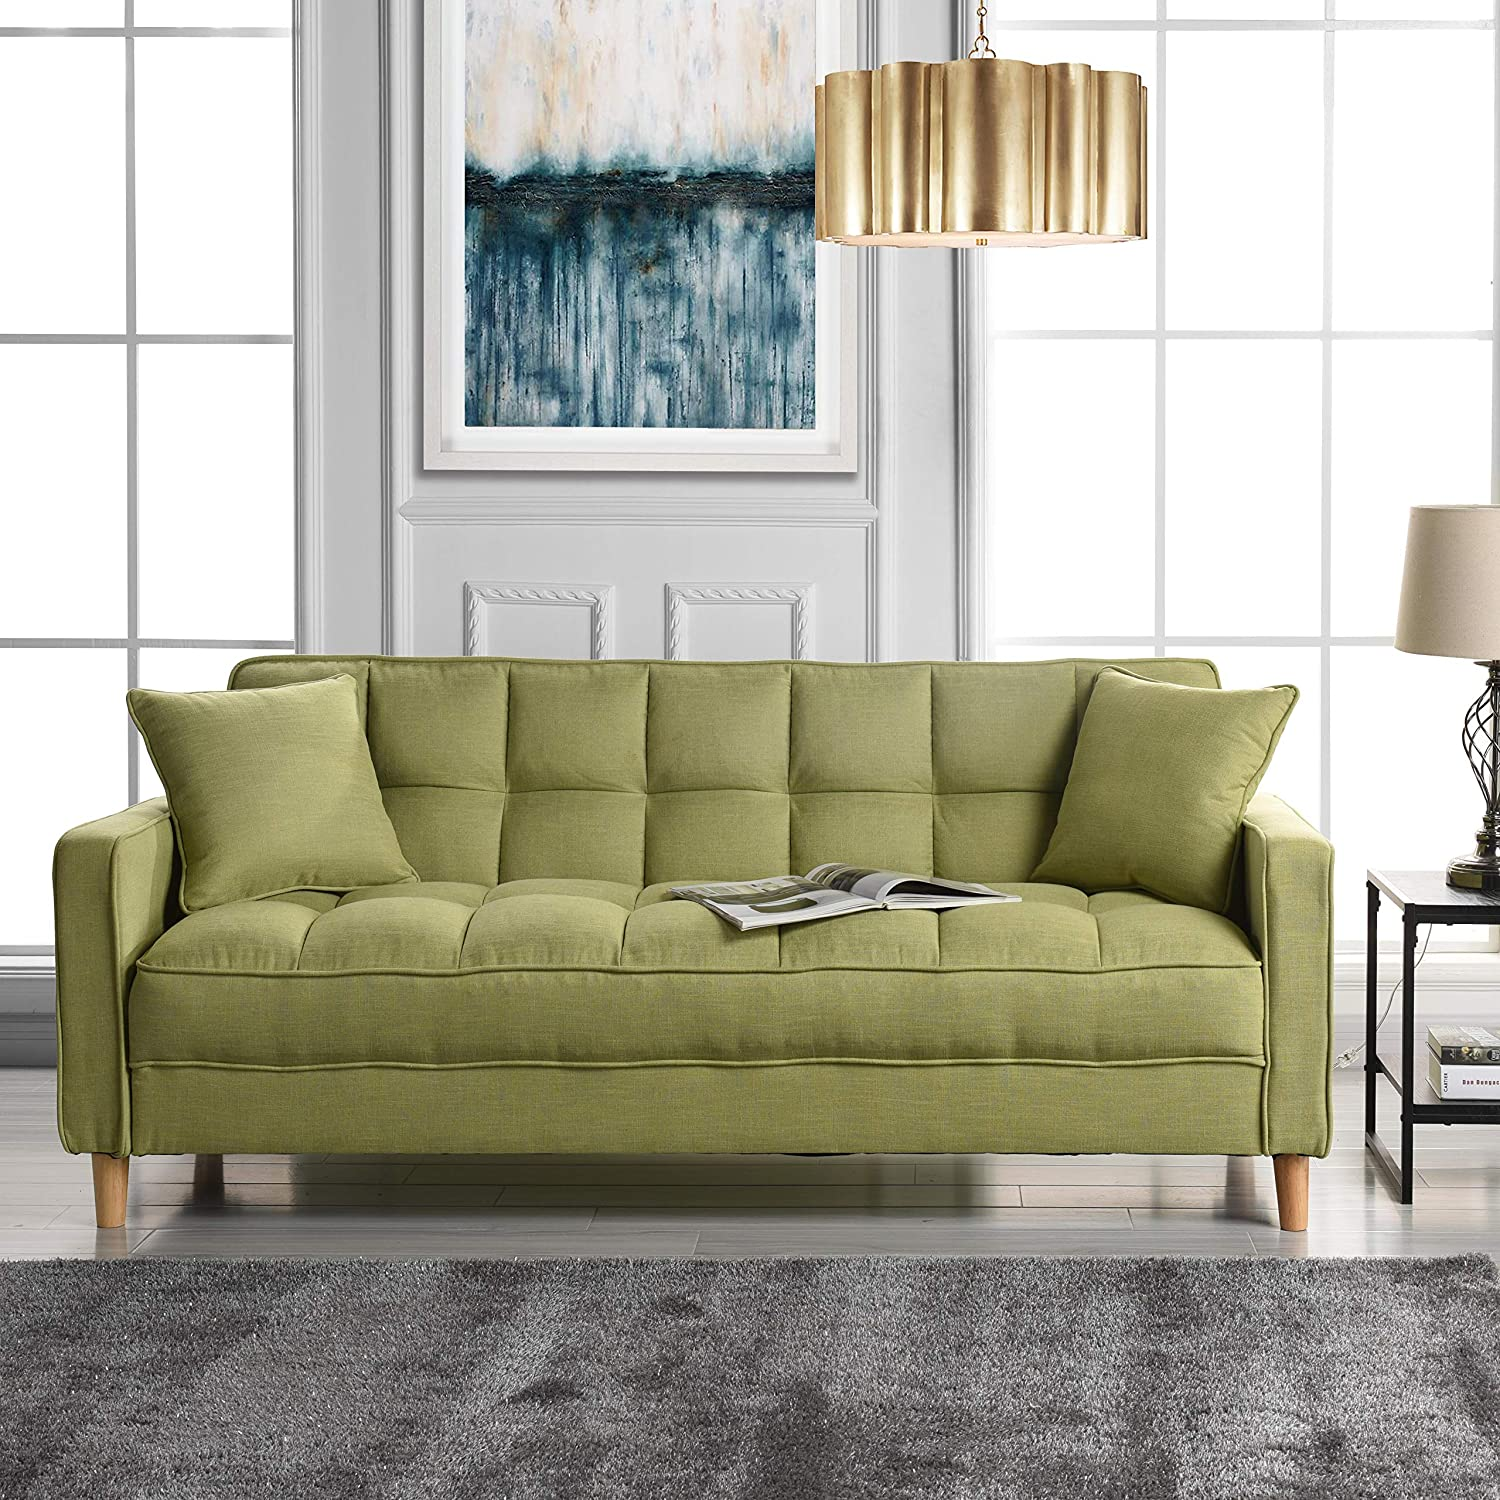 Amazon com modern linen fabric tufted small space living room sofa couch green kitchen dining